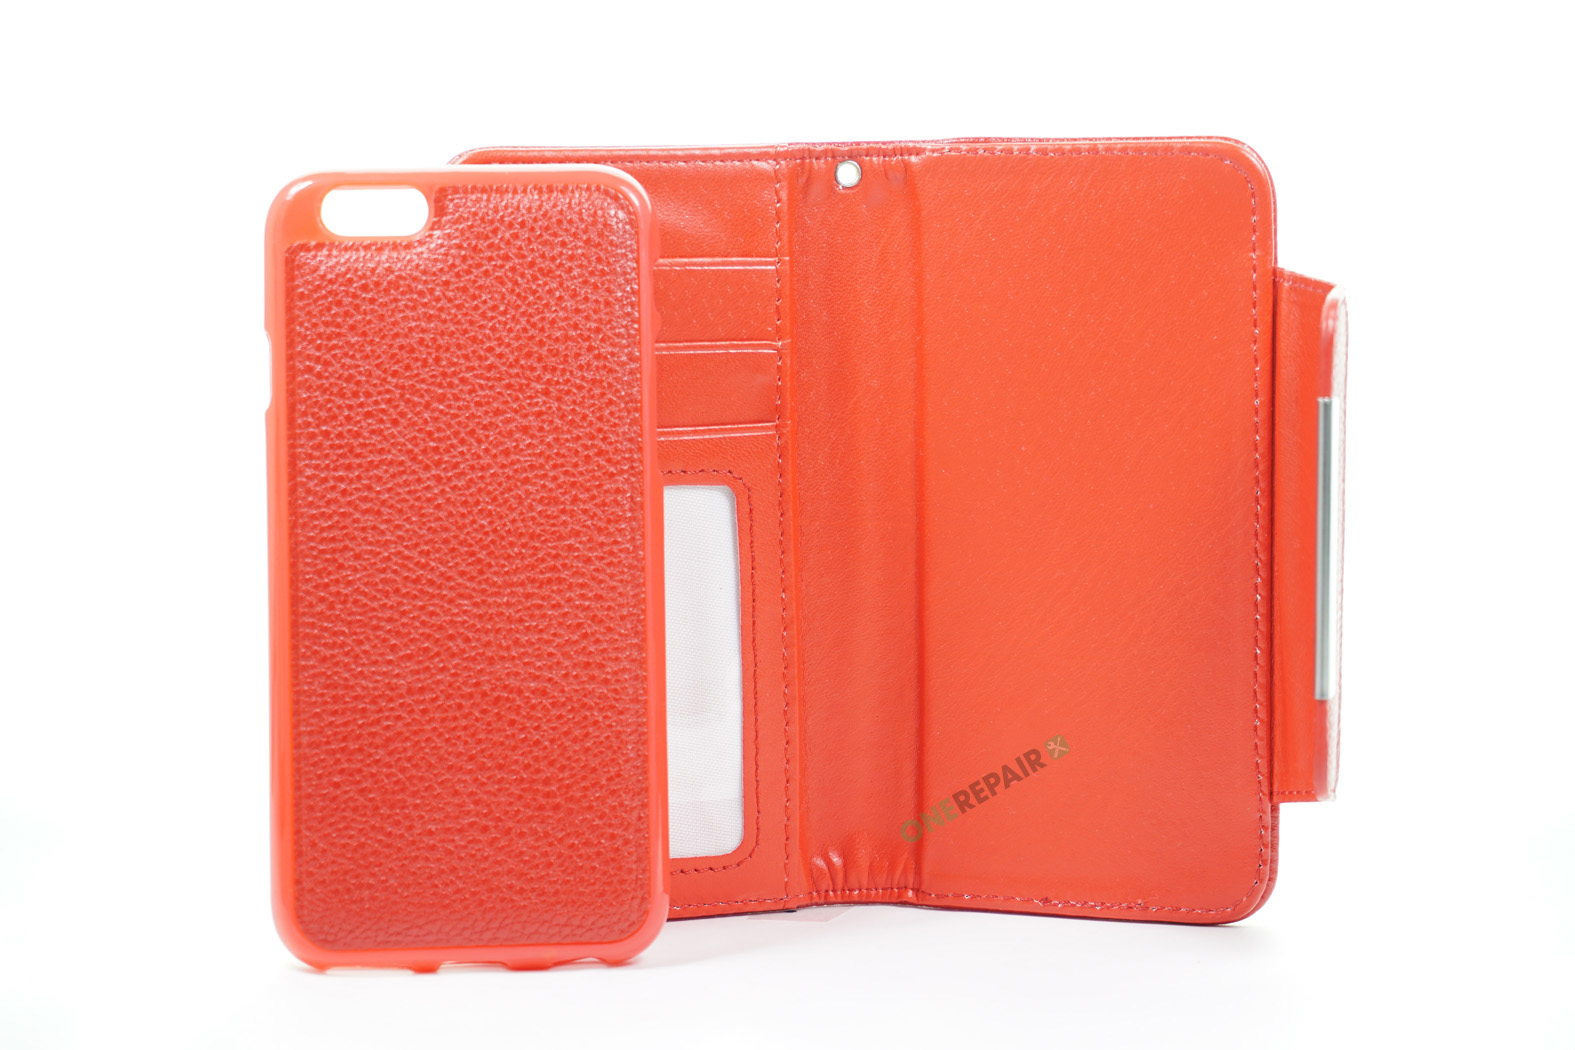 350534_iPhone_6_6S_Flipcover_Magnetcover_Cover_Roed_OneRepair_00003